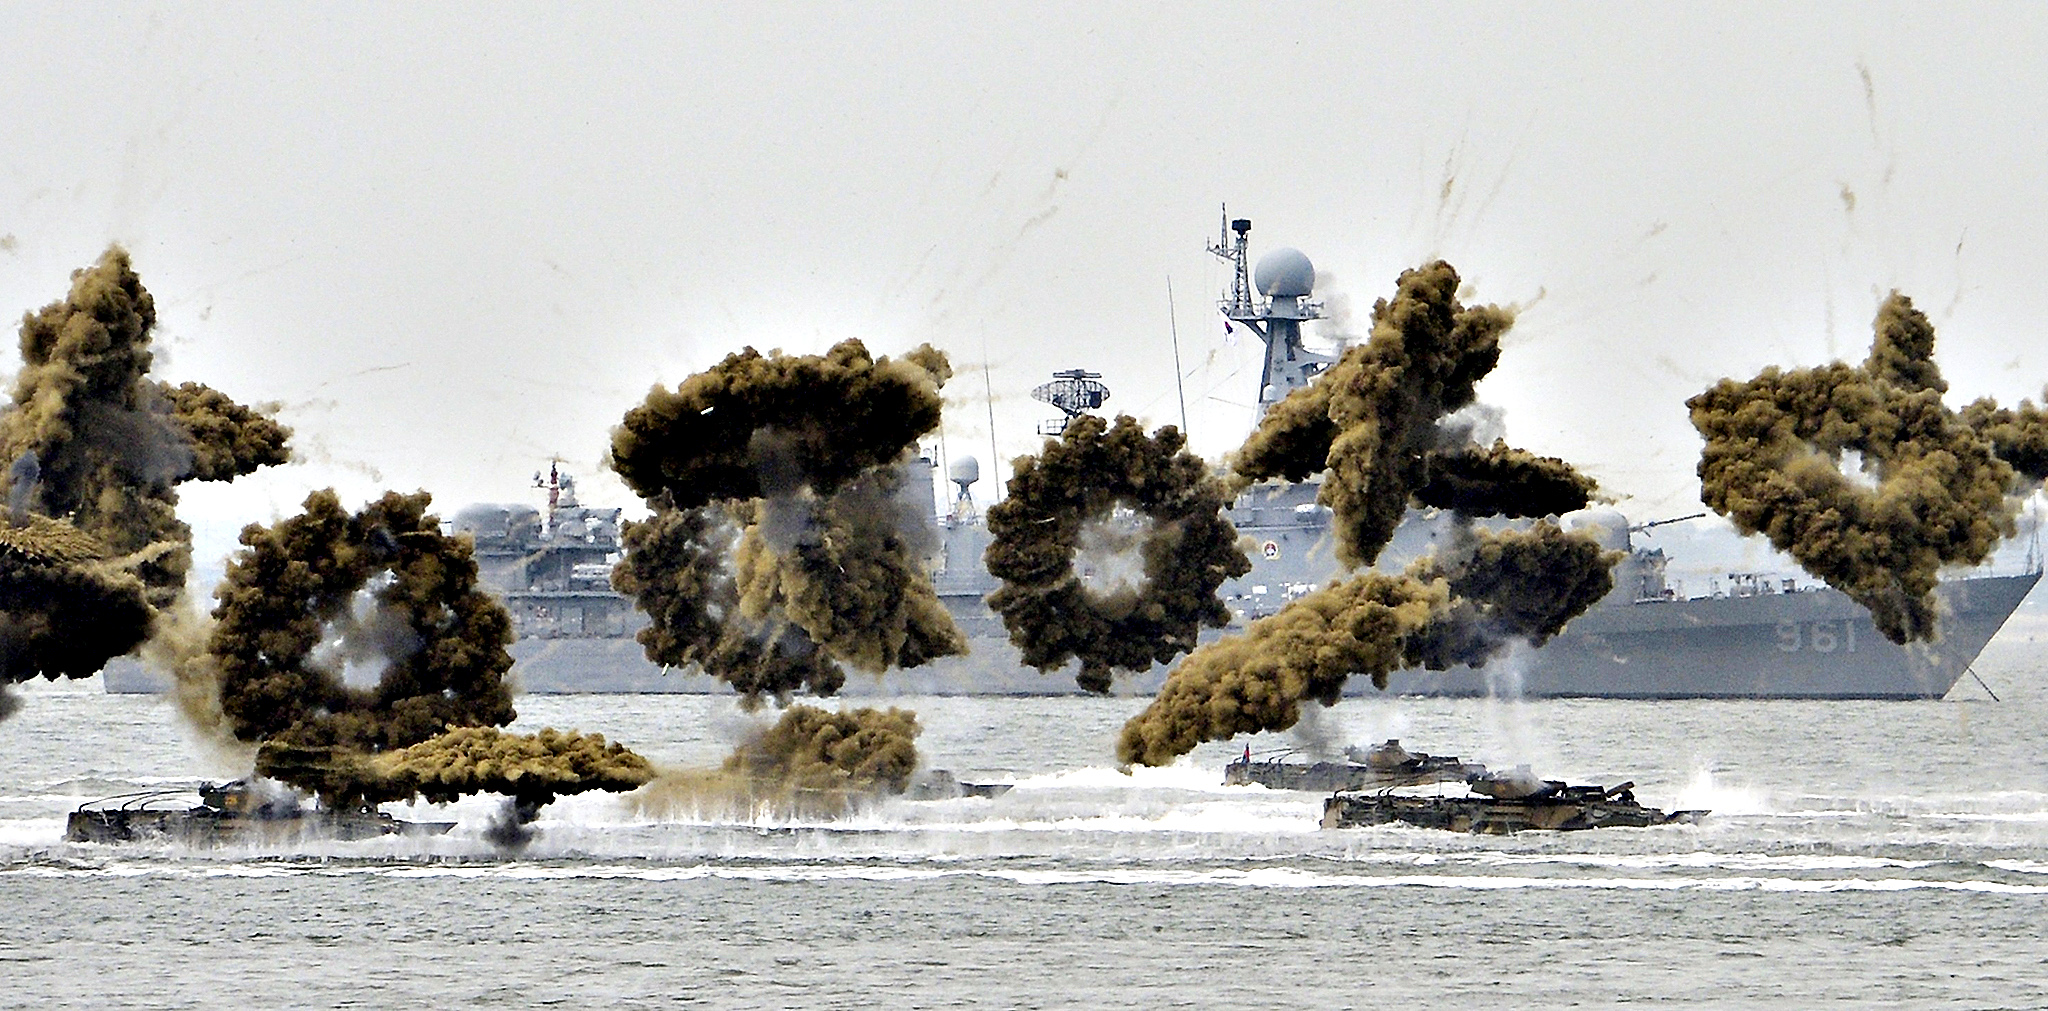 South Korean Marine Corps' amphibious vehicles take part in a ceremony to mark the 64th anniversary of Incheon Landing Operations conducted by the U.S.-led United Nations troop during the 1950-1953 Korean War, in the sea off Incheon, September 15, 2014.